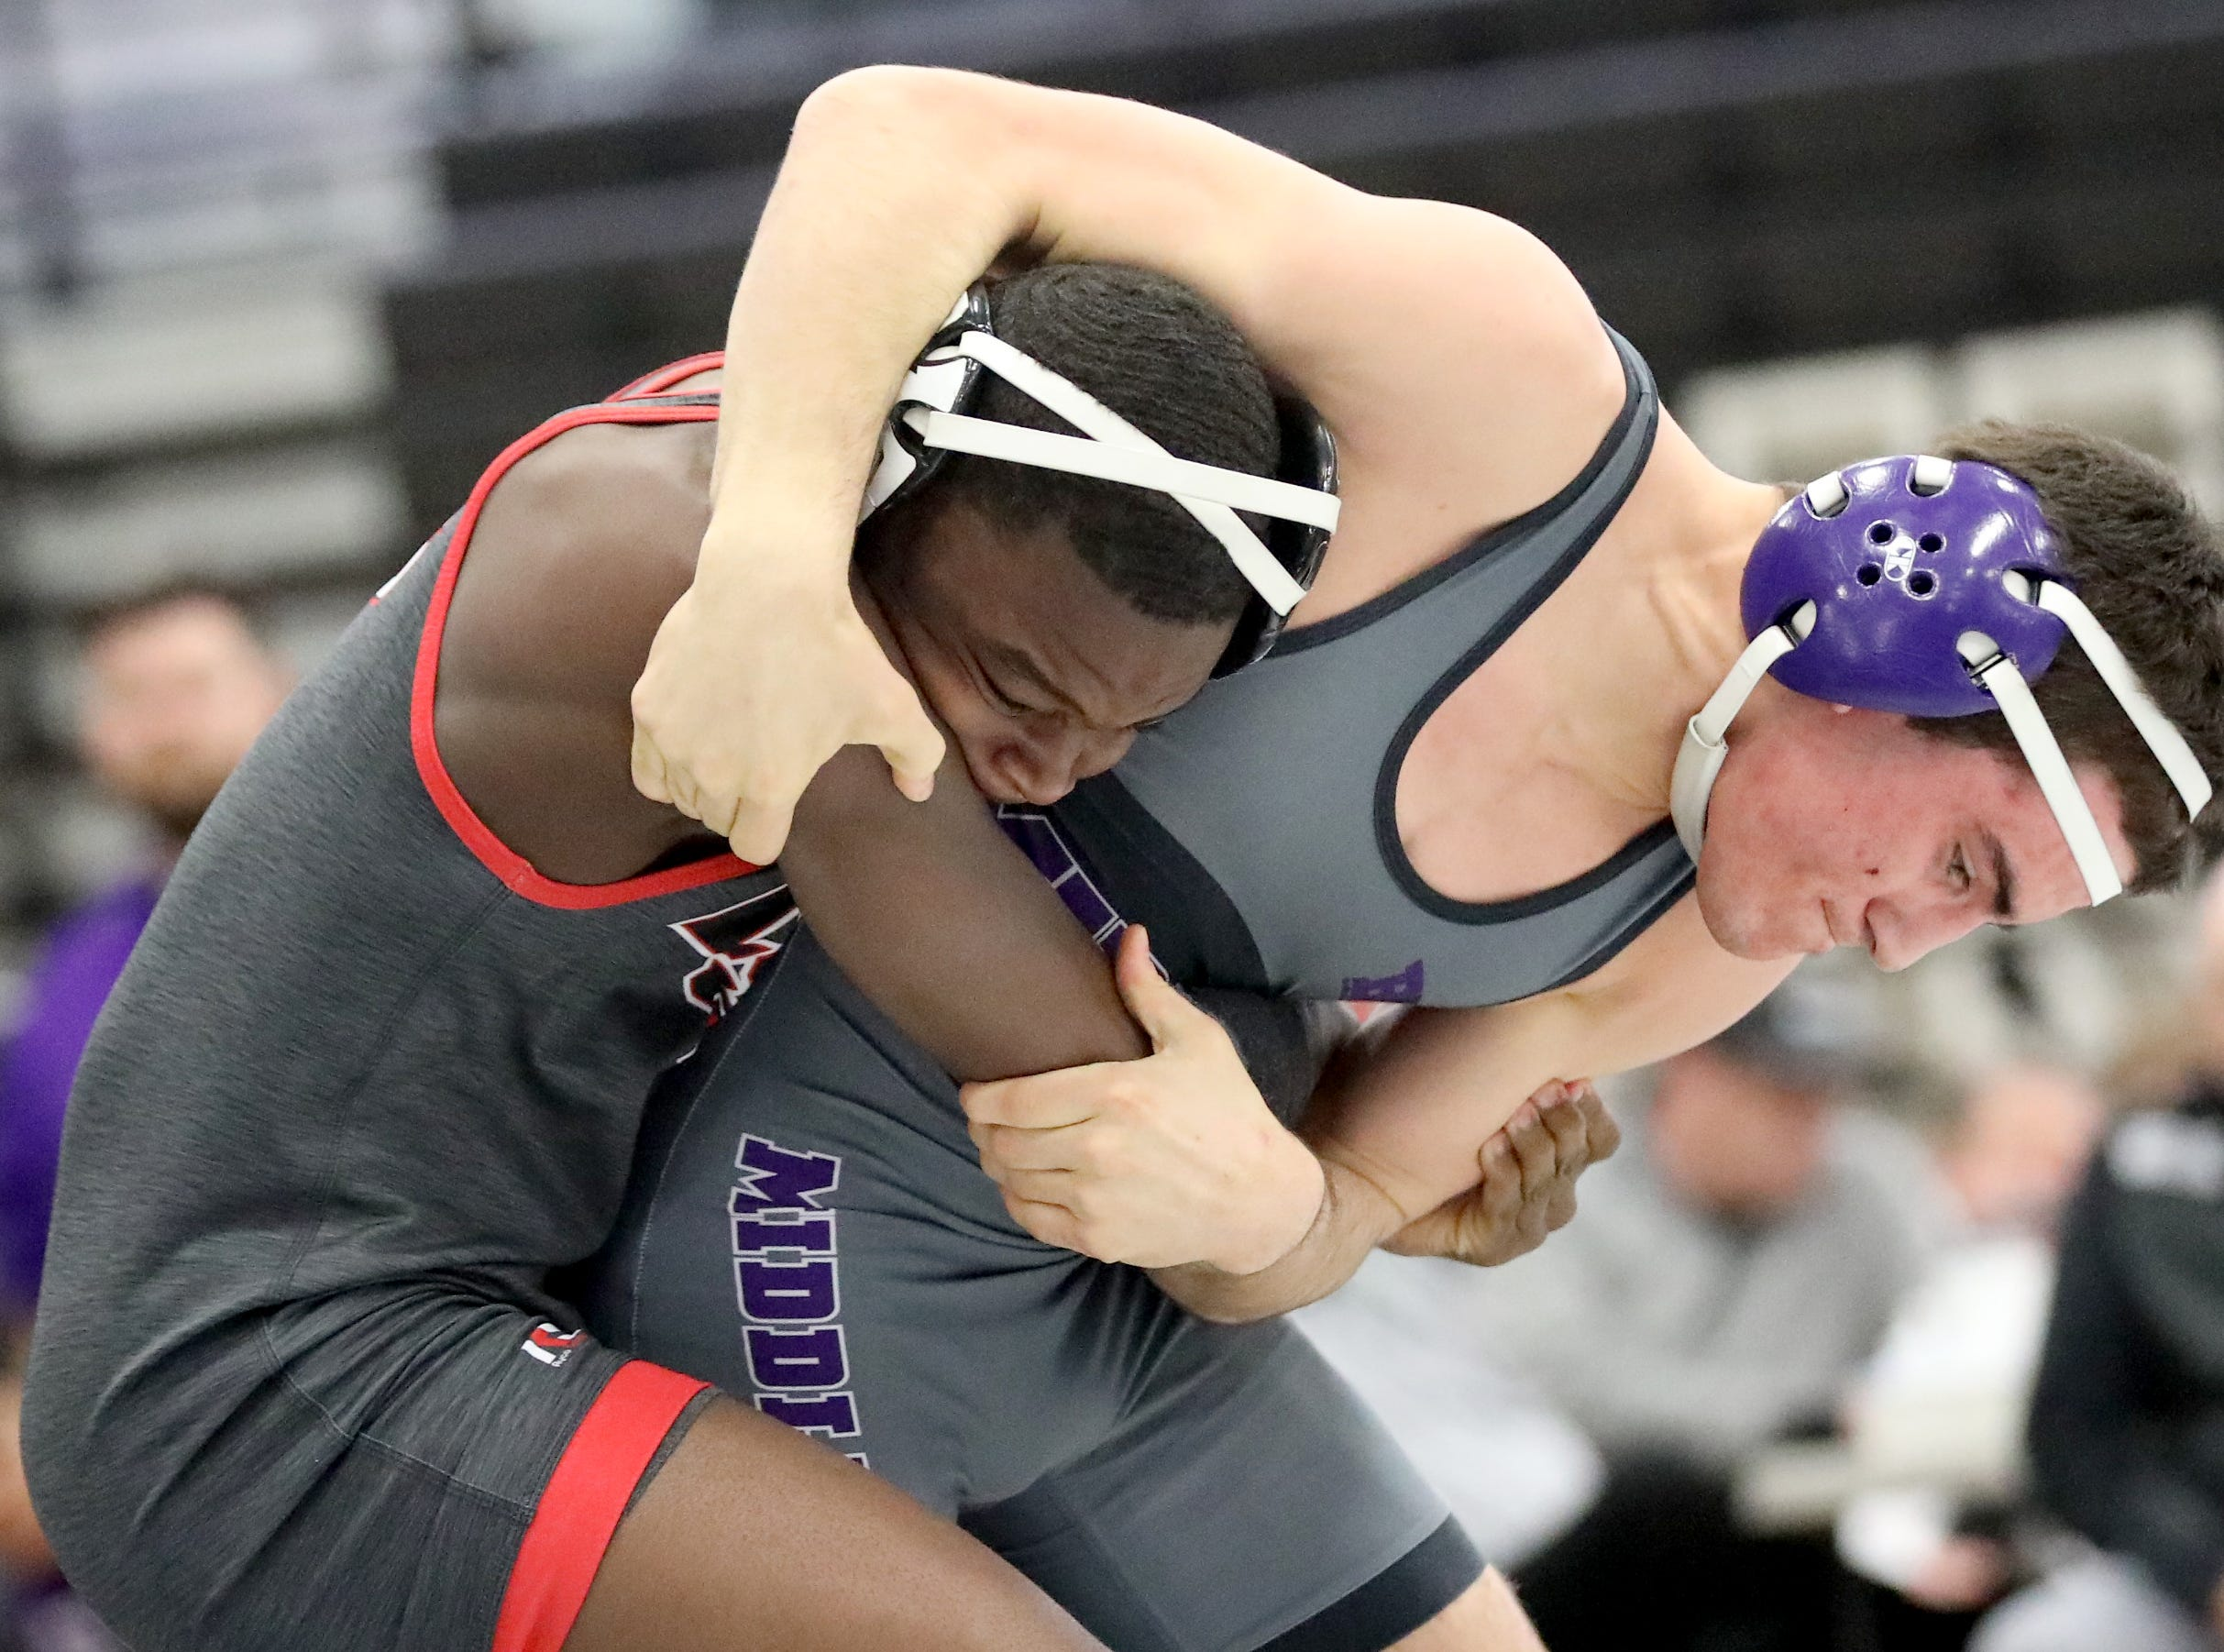 La Salle wrestler Darnai Heard battles Middletown wrestler Judah Thomas during the Division I team tournament at Lakota East High School, Saturday, Feb. 2, 2019.